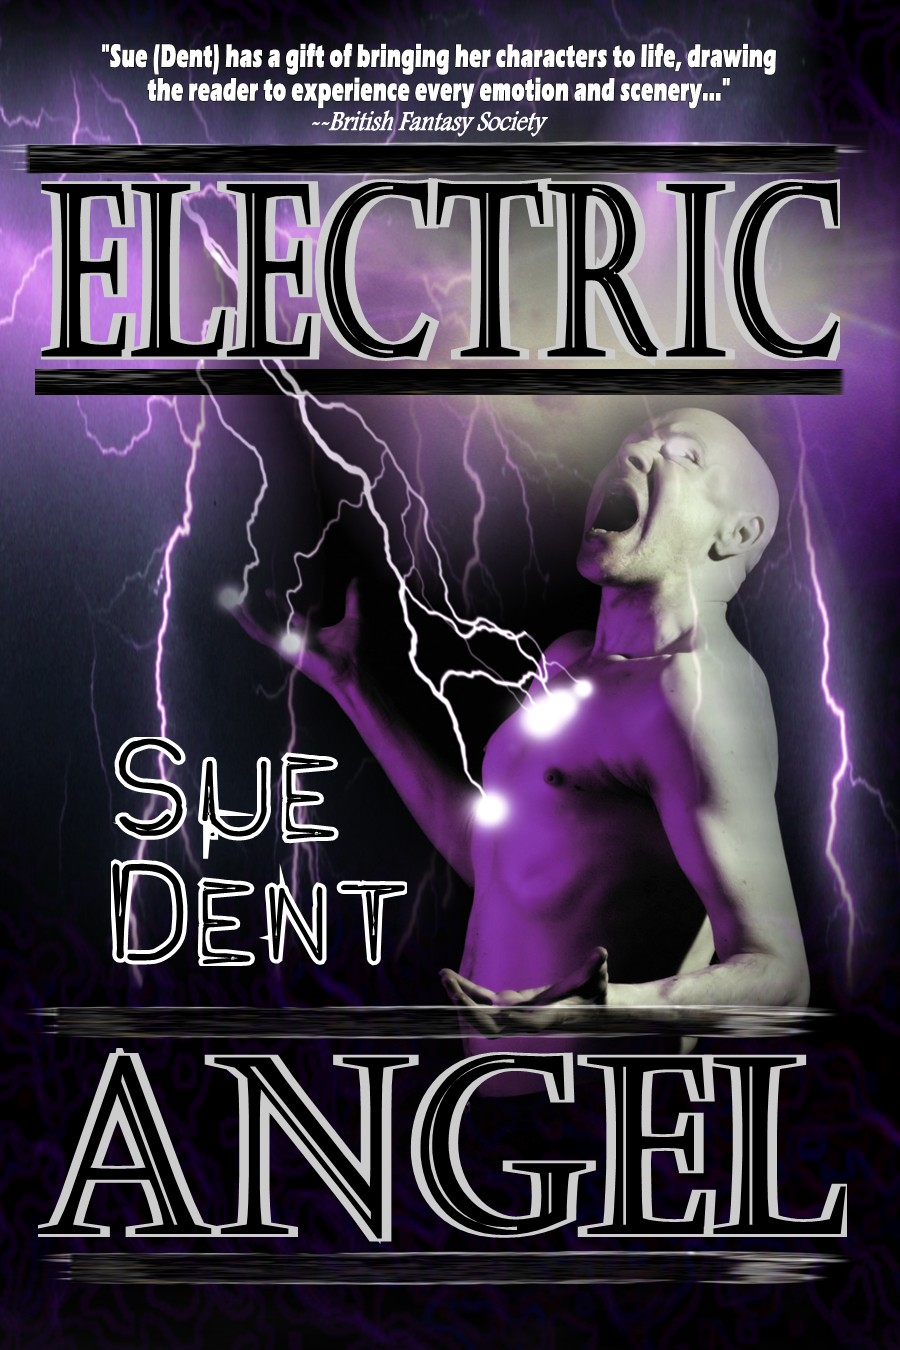 Electric Angel